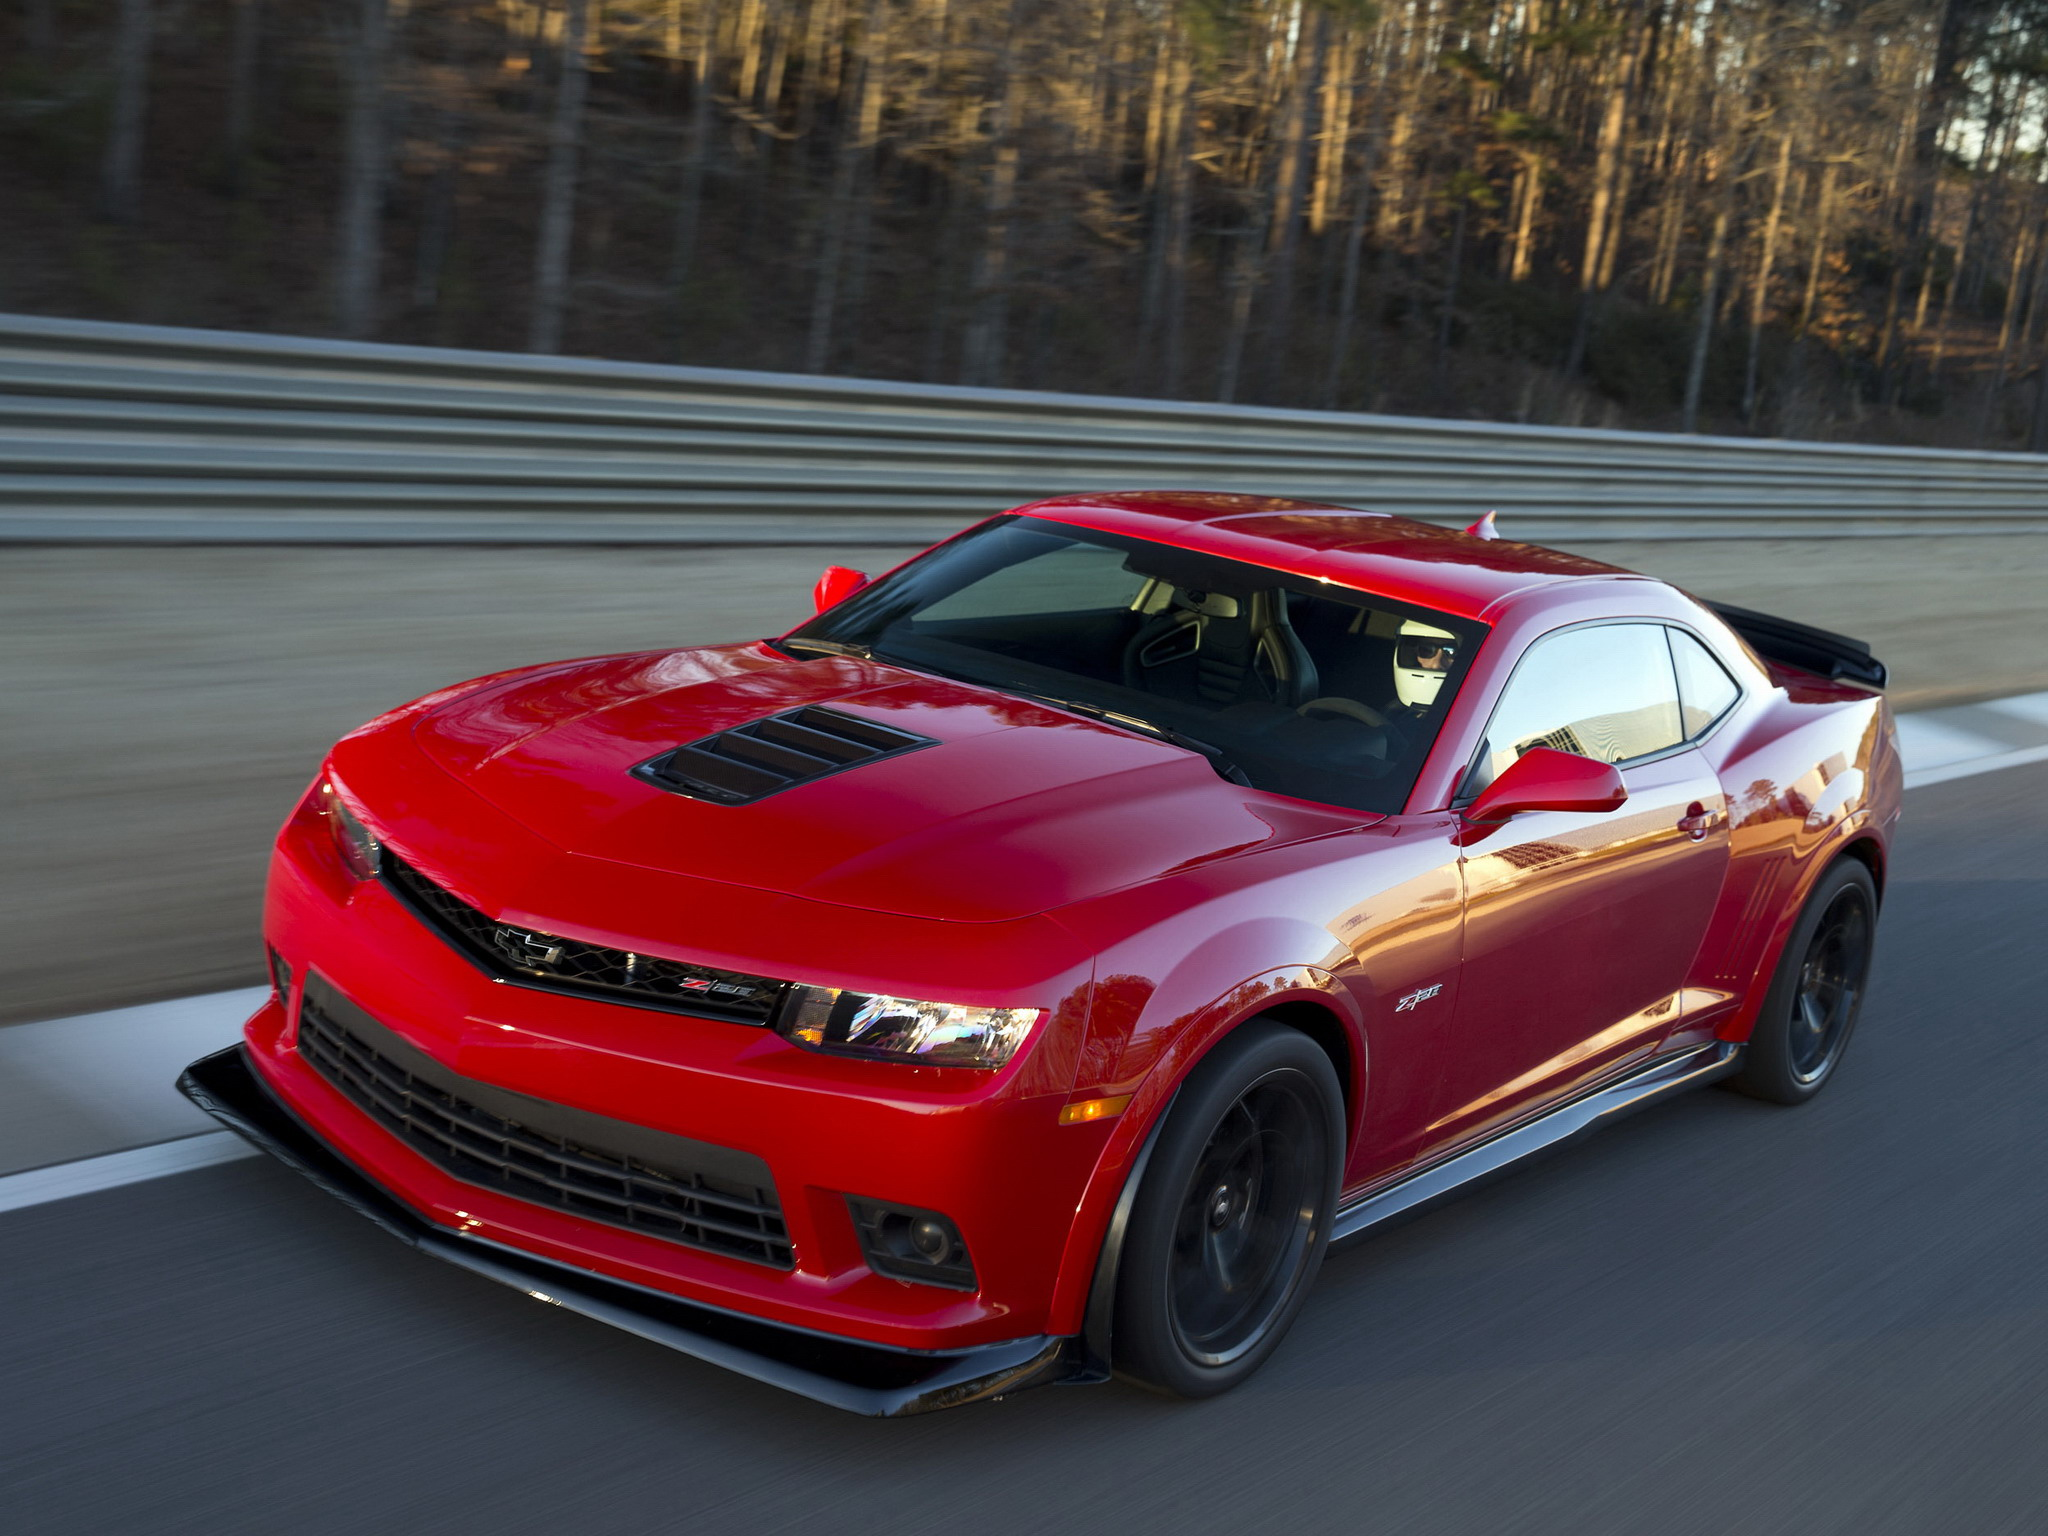 2014 Chevrolet Camaro Z 28 Top Speed